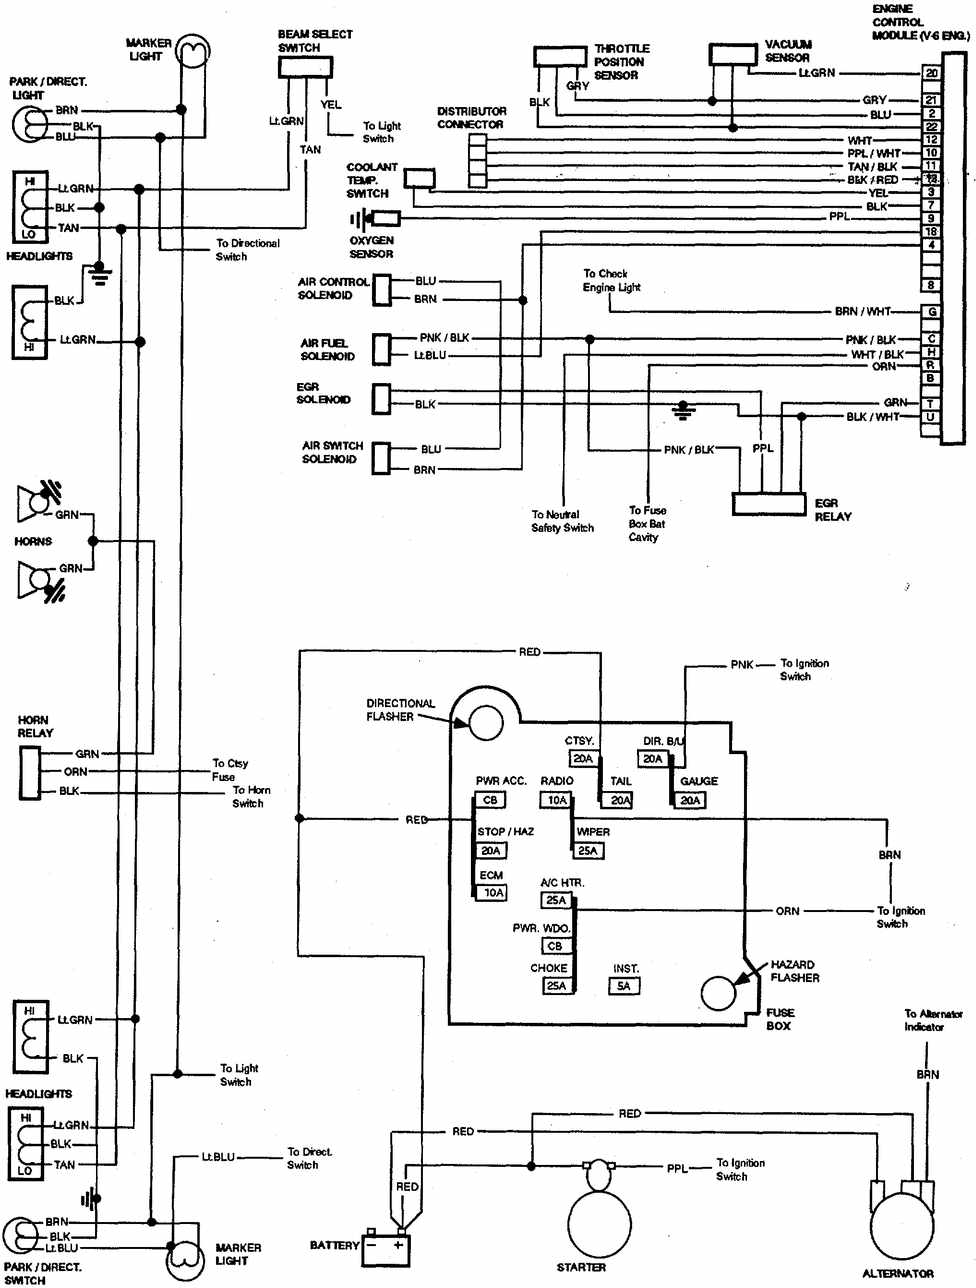 Chevrolet V Trucks Electrical Wiring Diagram on 87 Toyota 4x4 Pickup Fuse Box